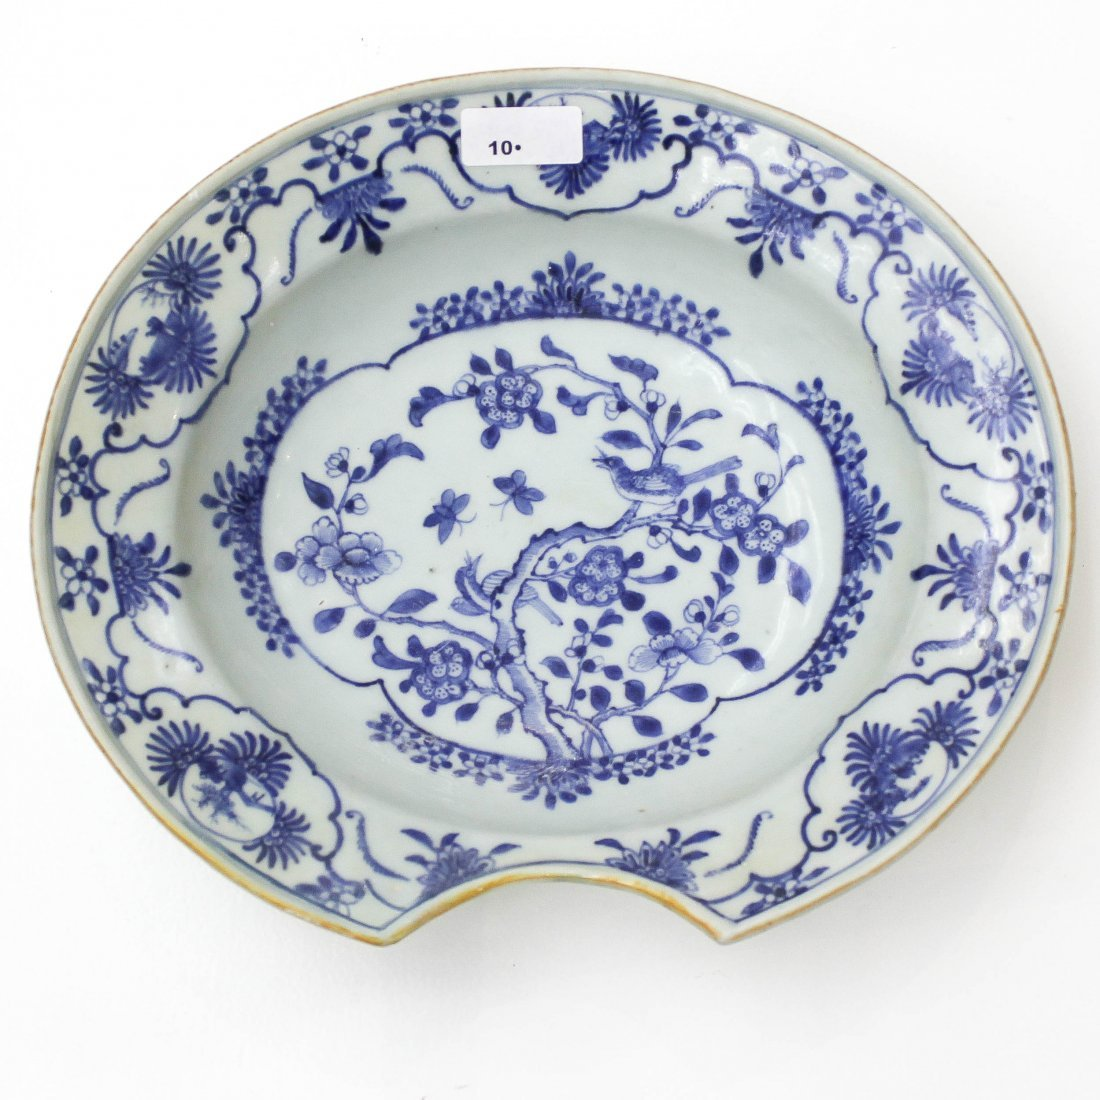 18th / 19th Century China Porcelain Barber's Bowl